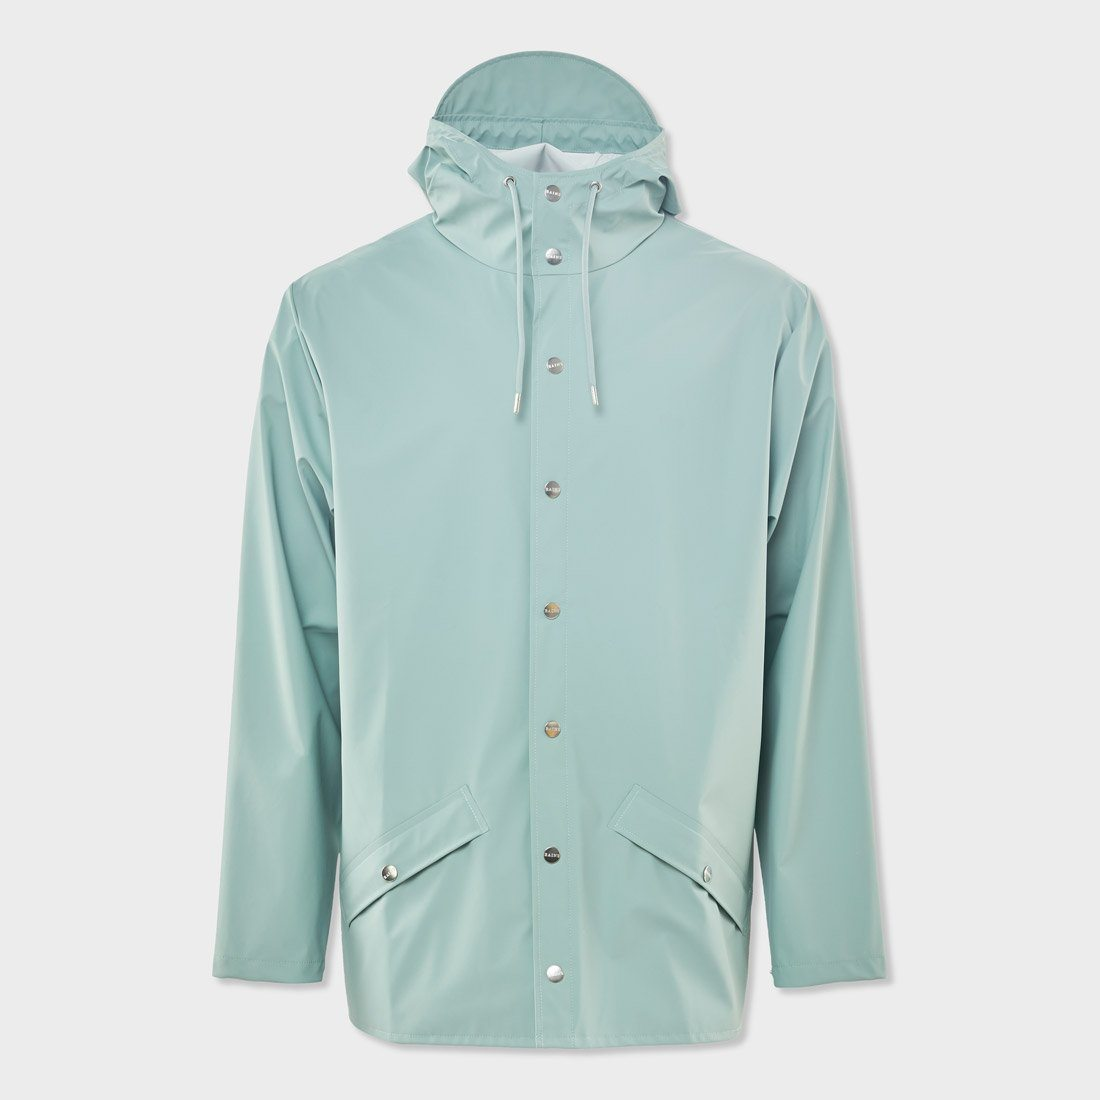 RAINS Unisex Jacket Dusty Mint